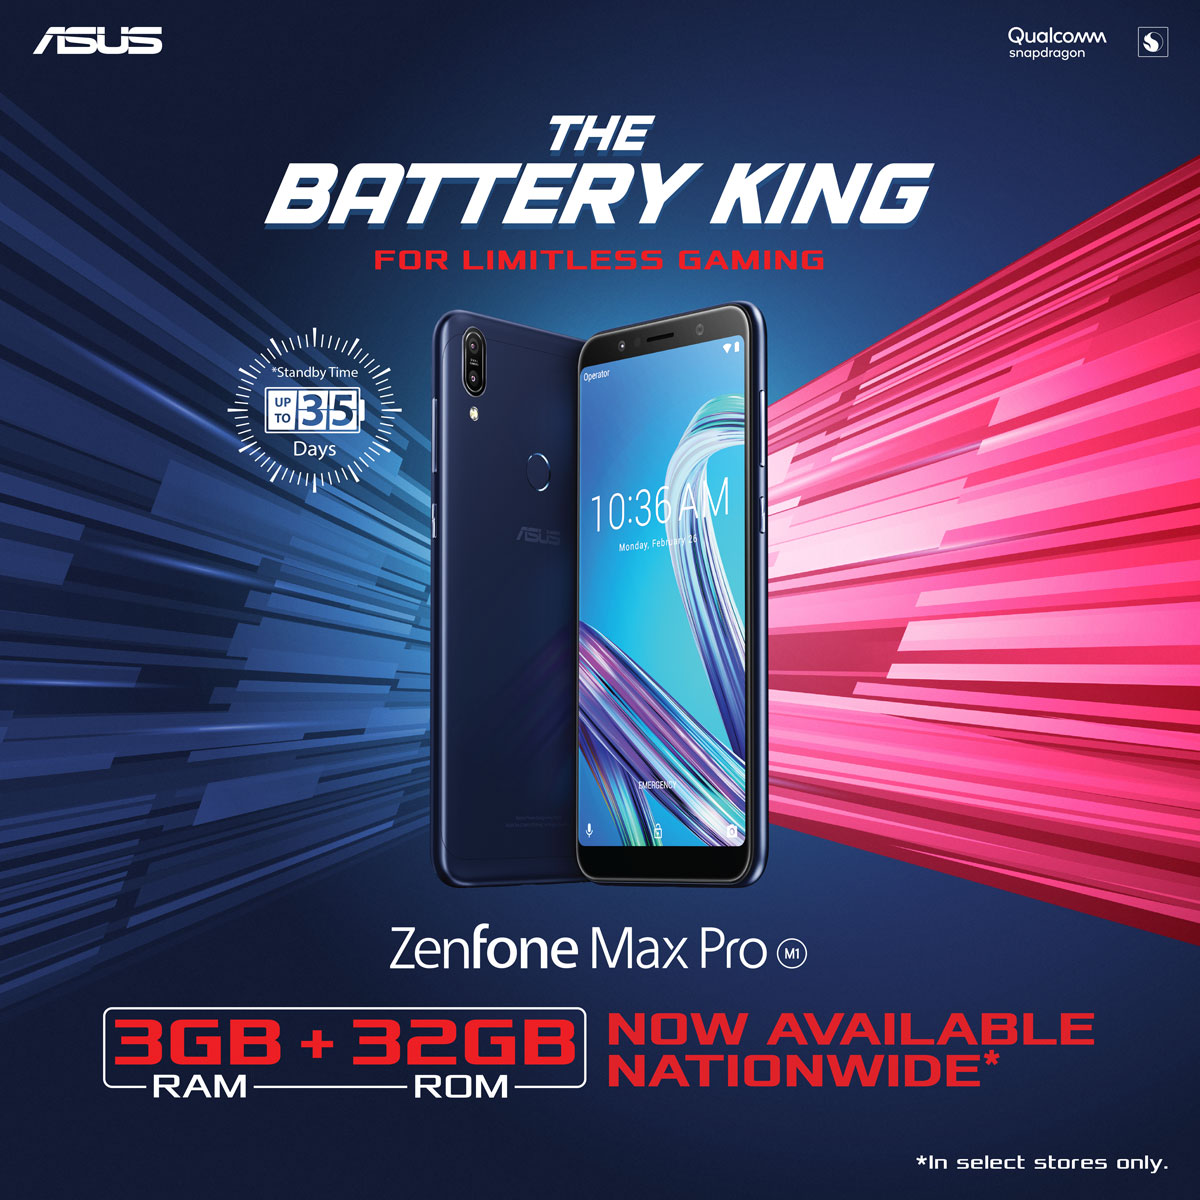 ZenFone Max Pro M1 3GB 32GB Variant Now Available - ASUS ZenFone Max Pro M1 3GB + 32GB Variant Now Available in Stores Nationwide!